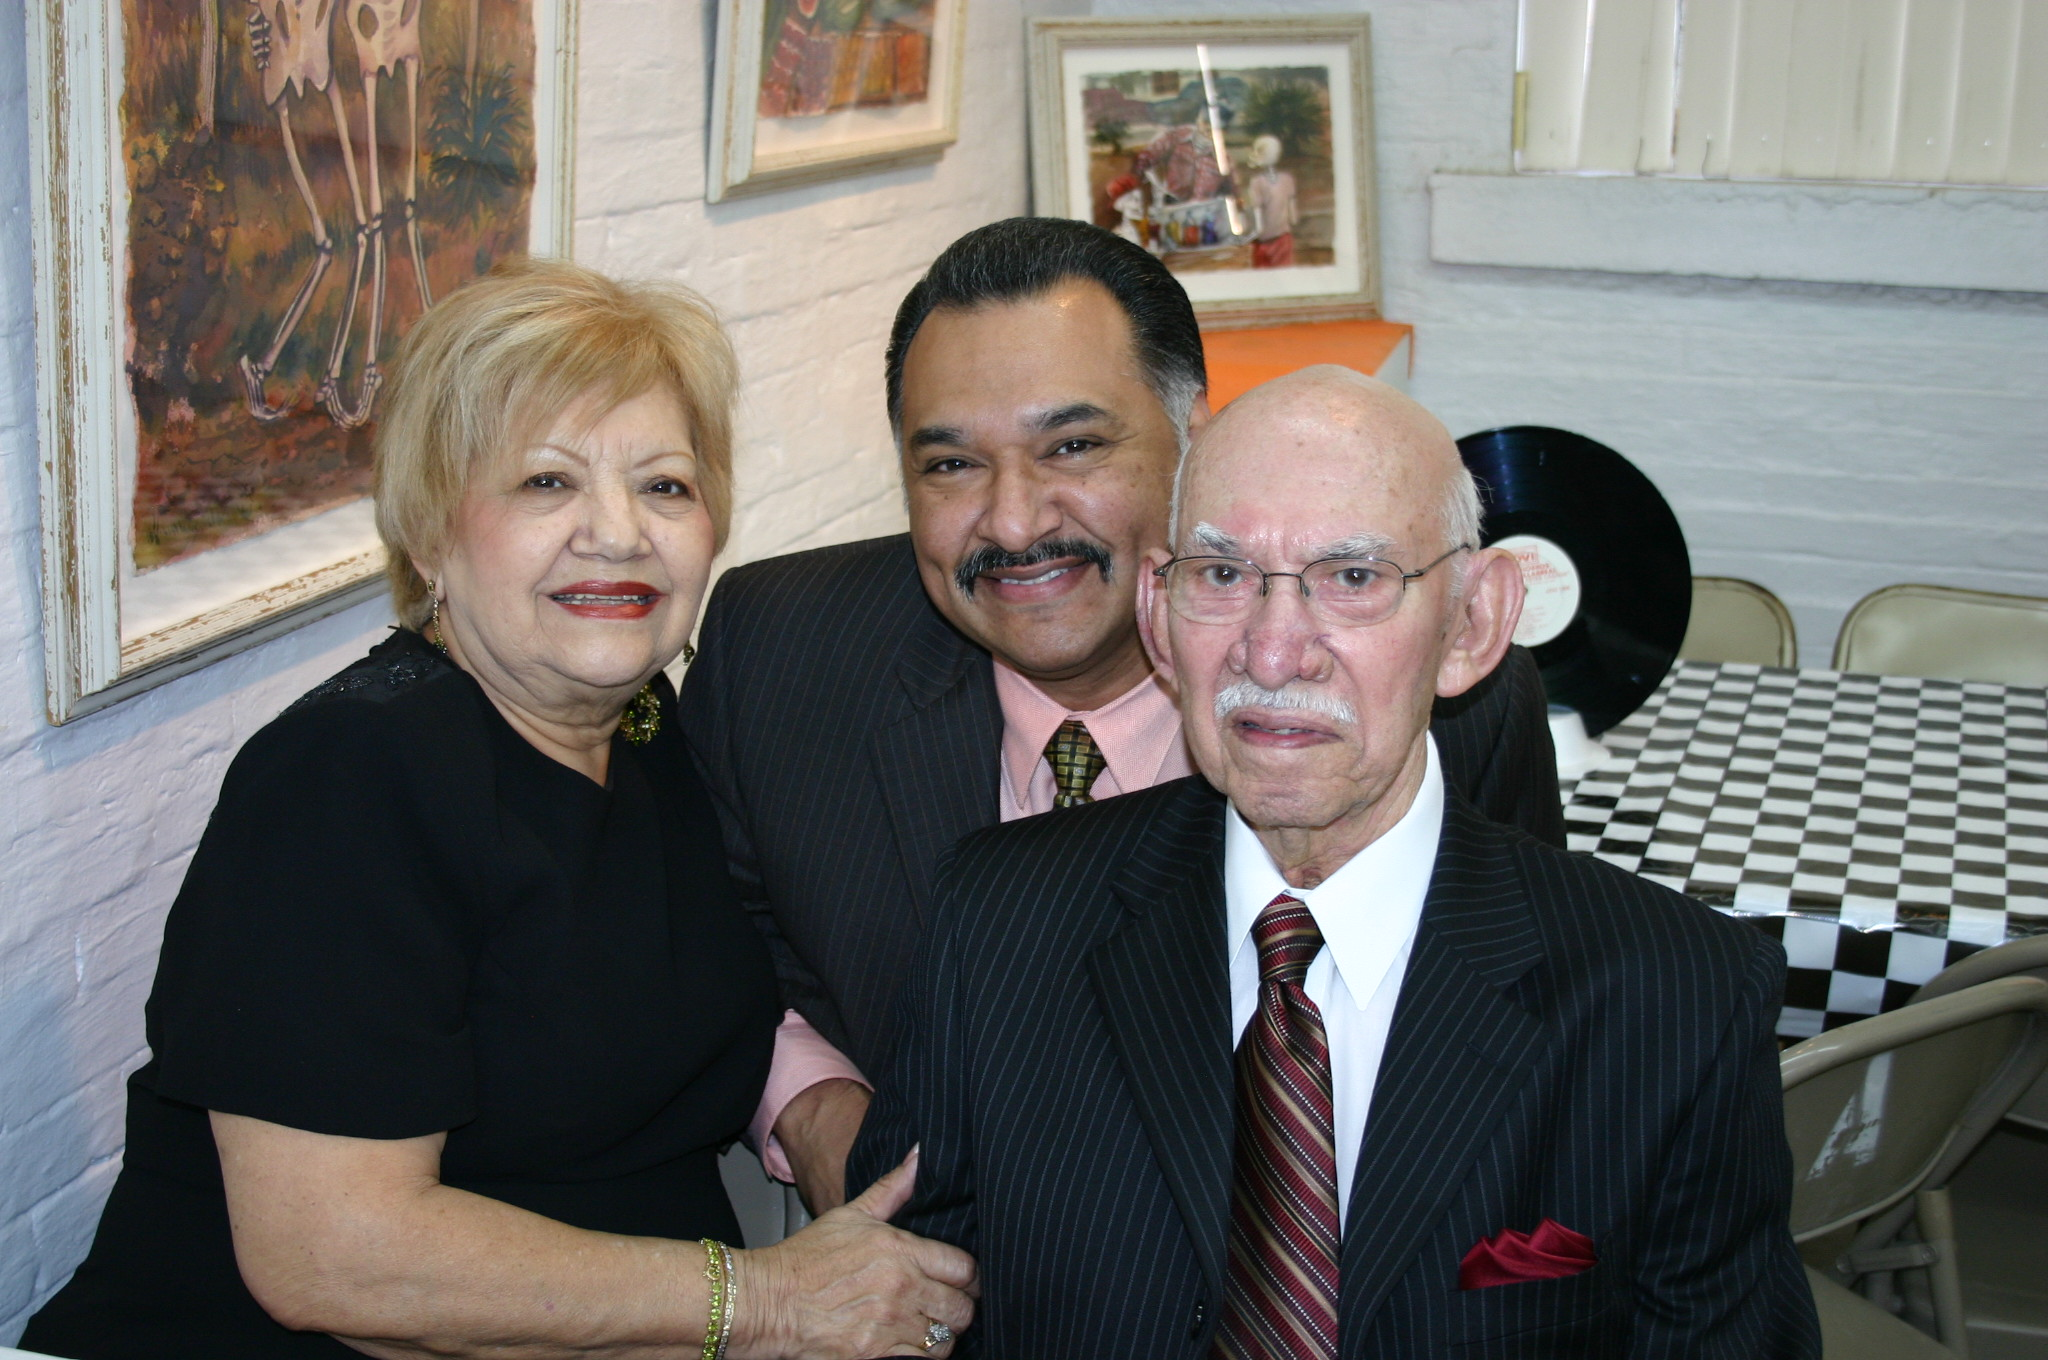 Odilia, Arnaldo, and Agapito Zuniga at Hall of Fame